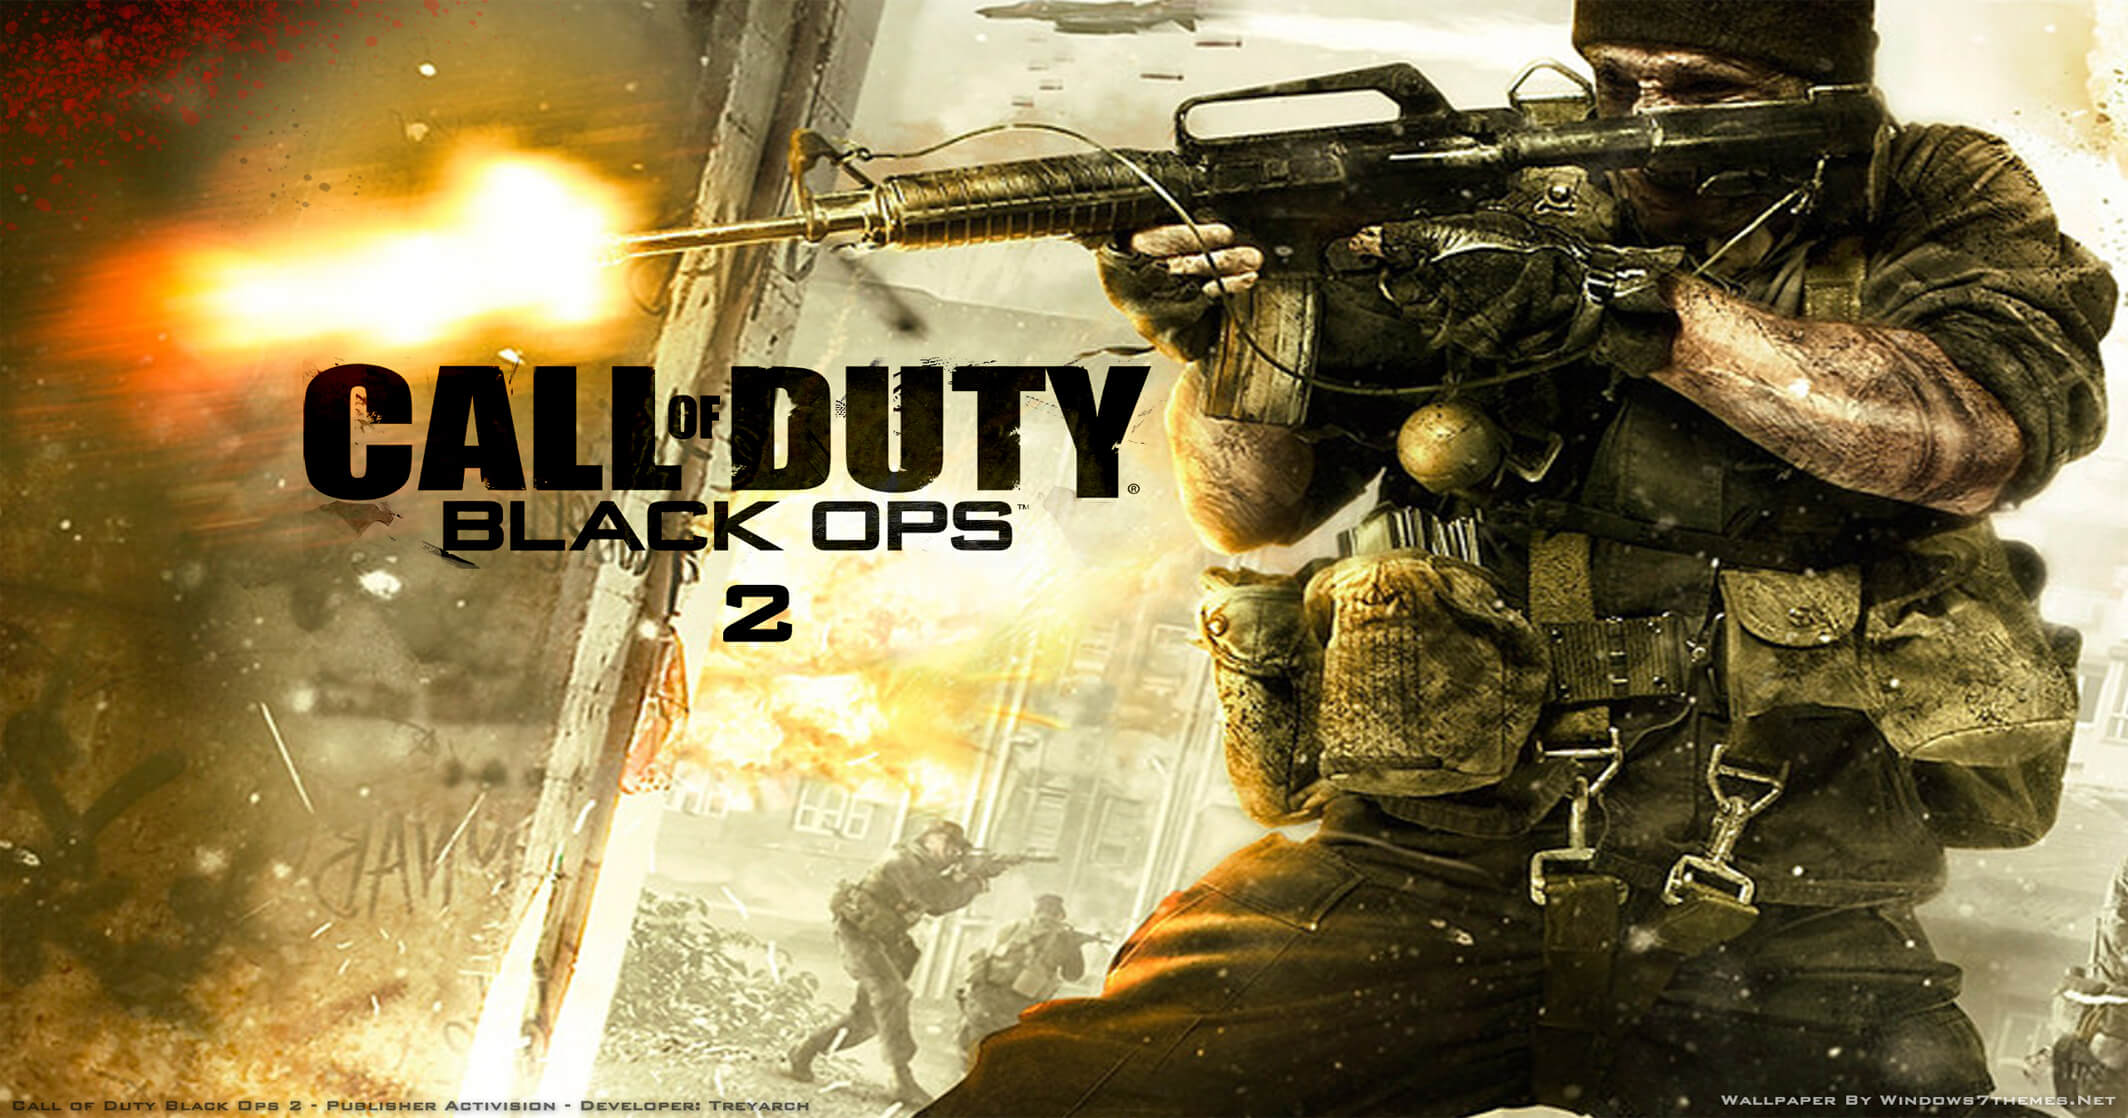 Call Of Duty Black Ops 2 PC Game Free Download Full Version ISO